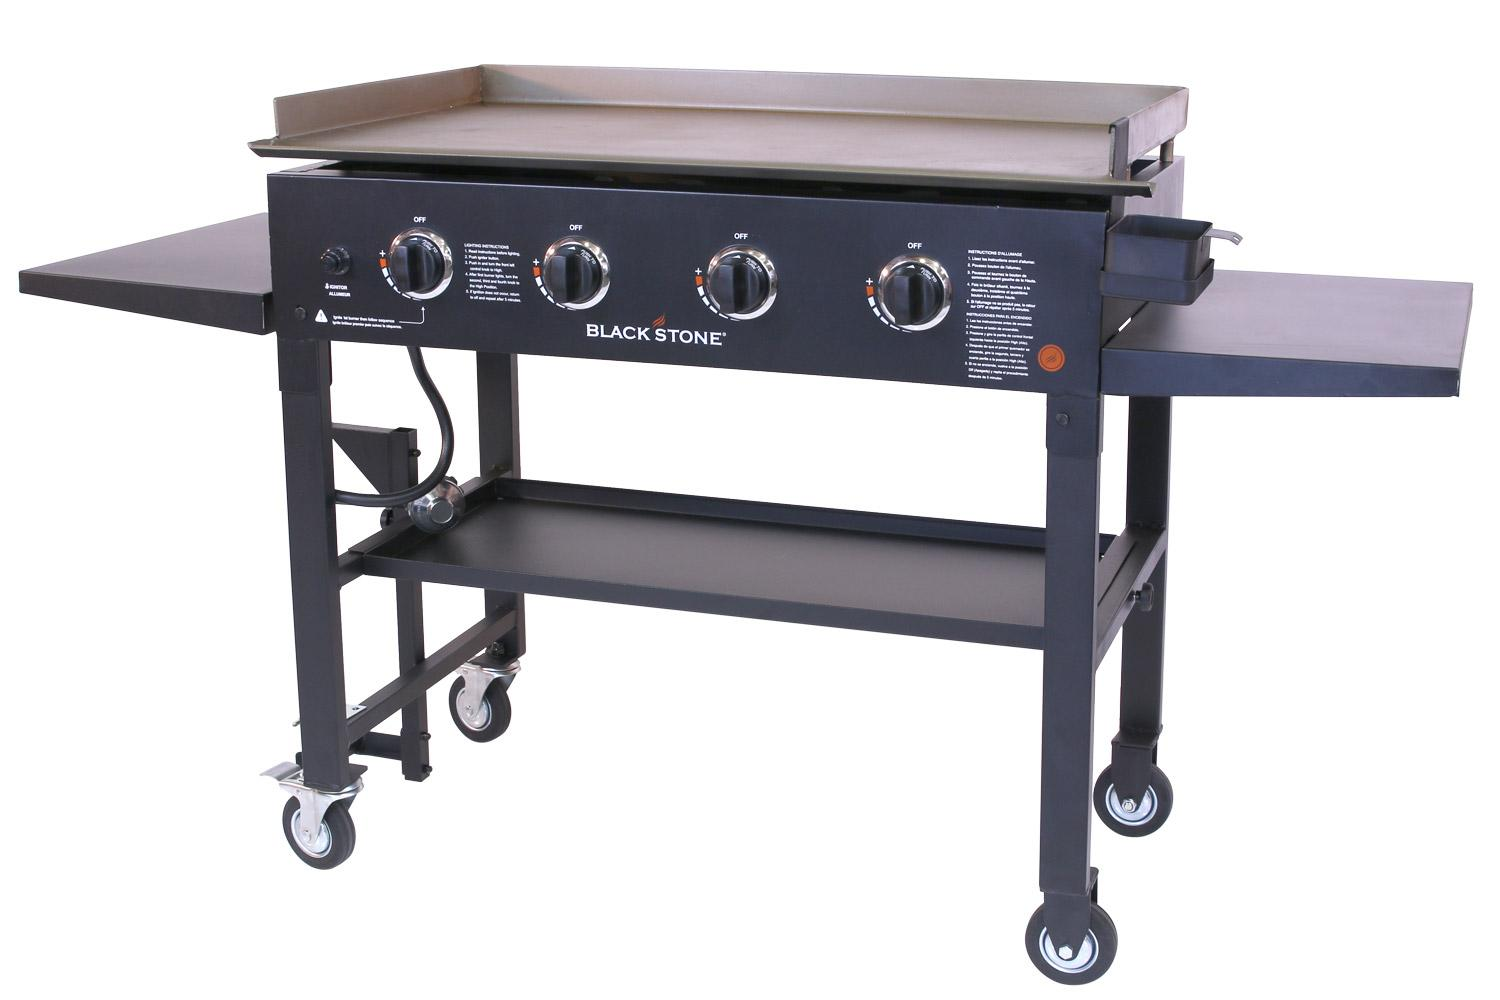 Portable Outdoor Griddle ~ Gas grill flat top griddle burner cooktop portable bbq